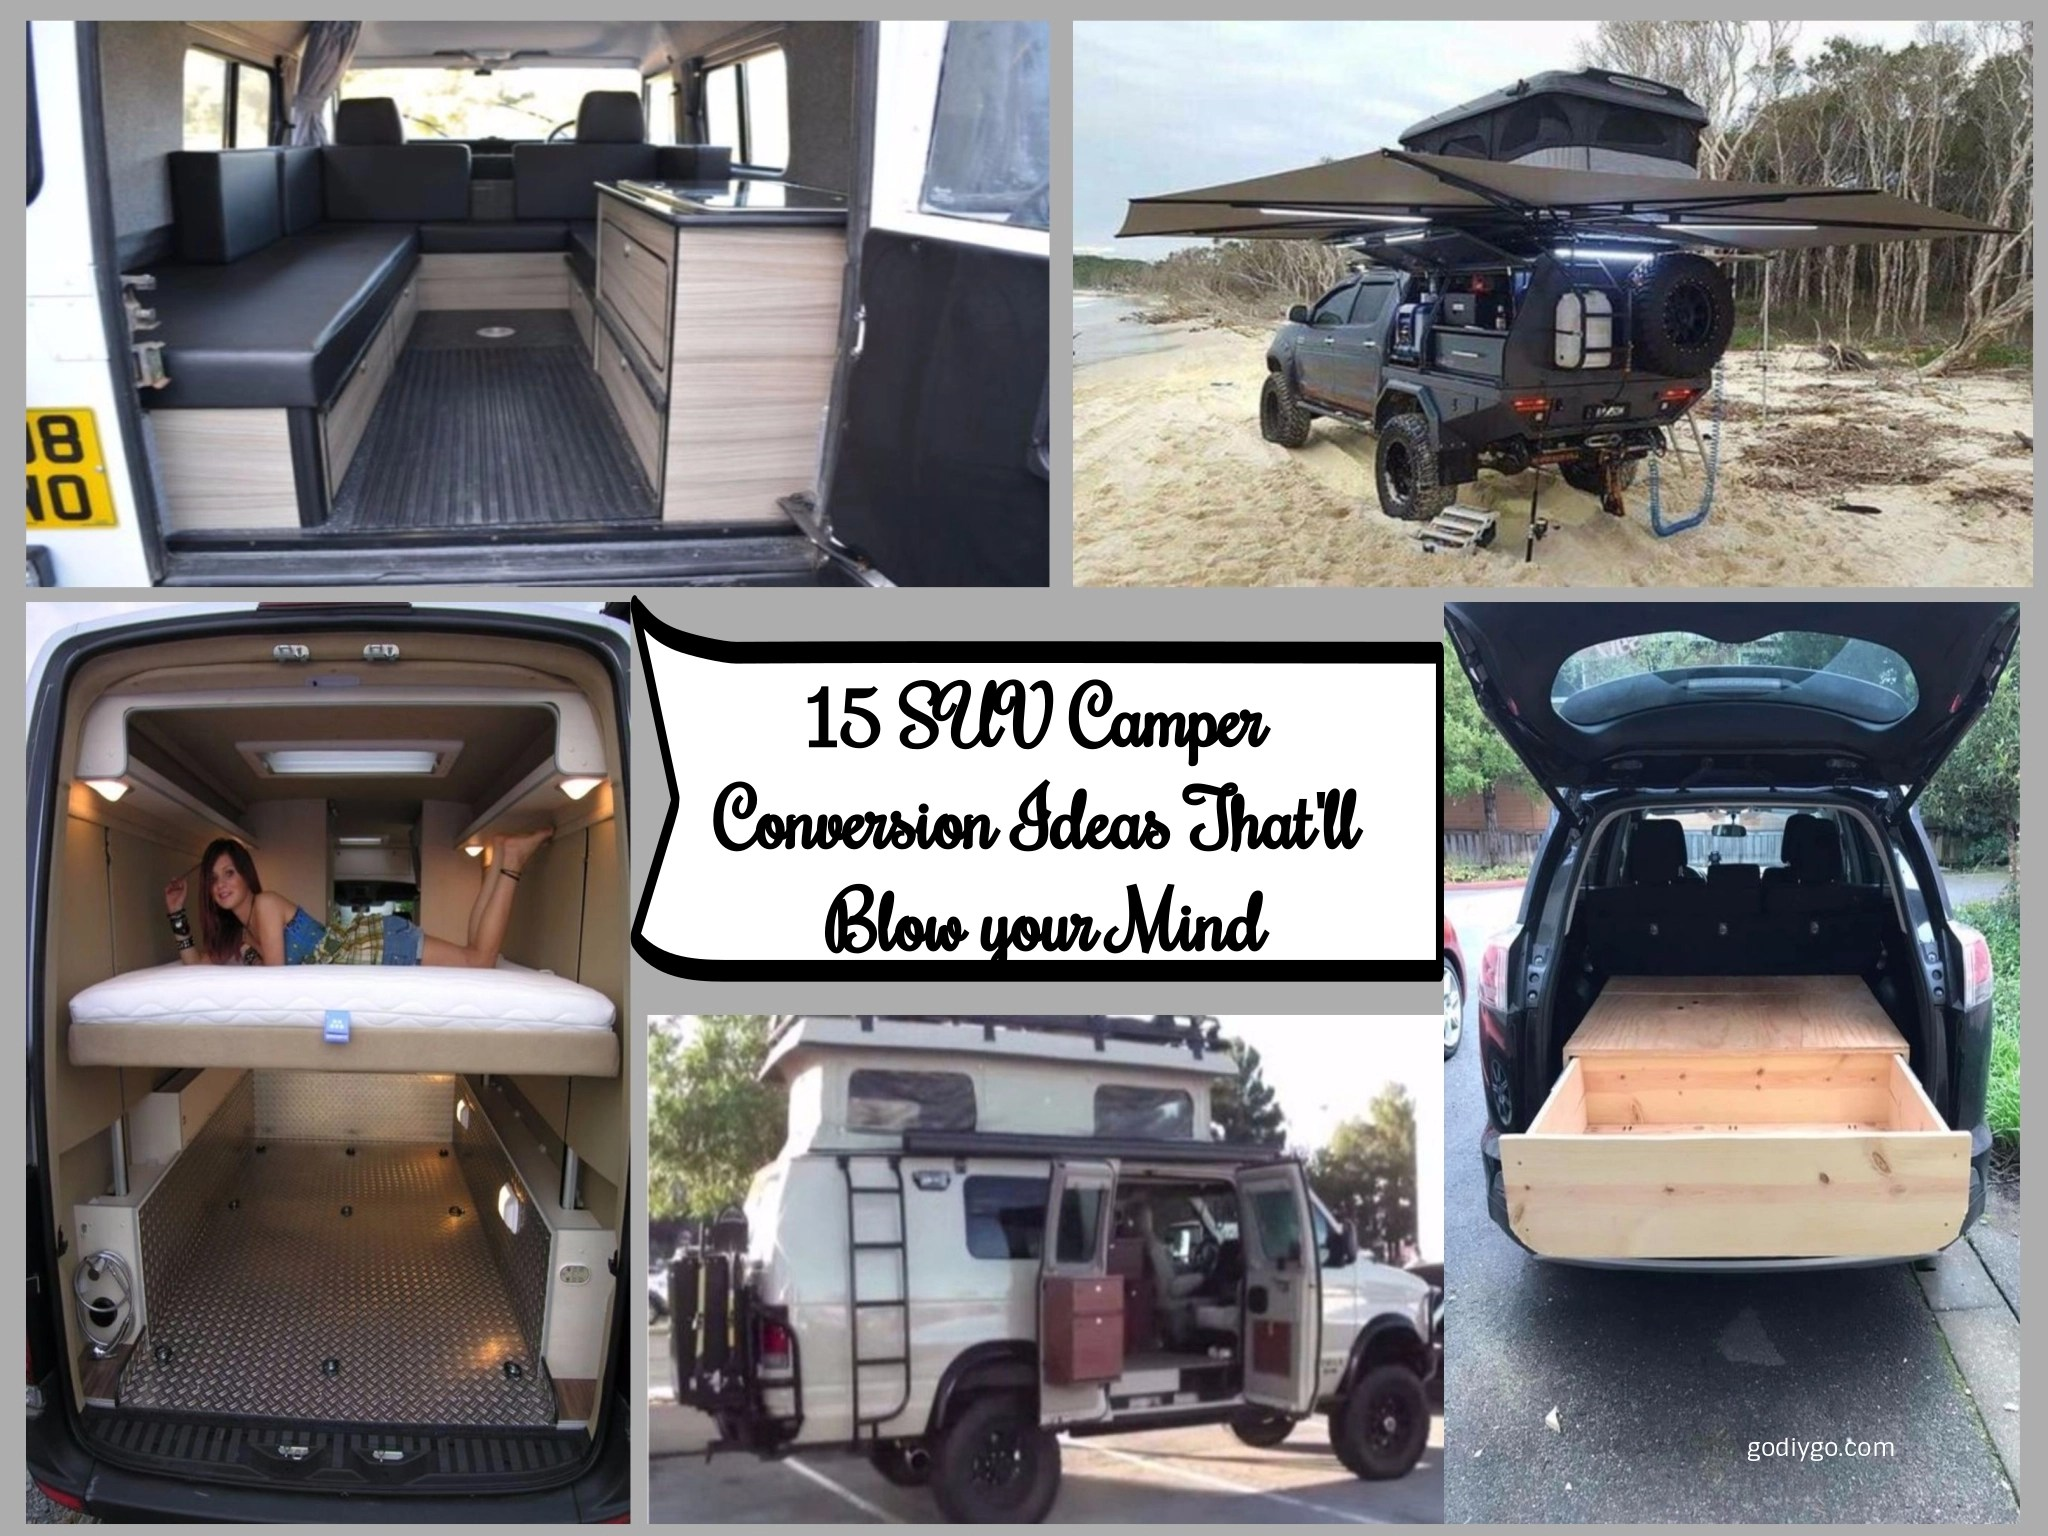 15 SUV Camper Conversion Ideas Thatll Blow Your Mind